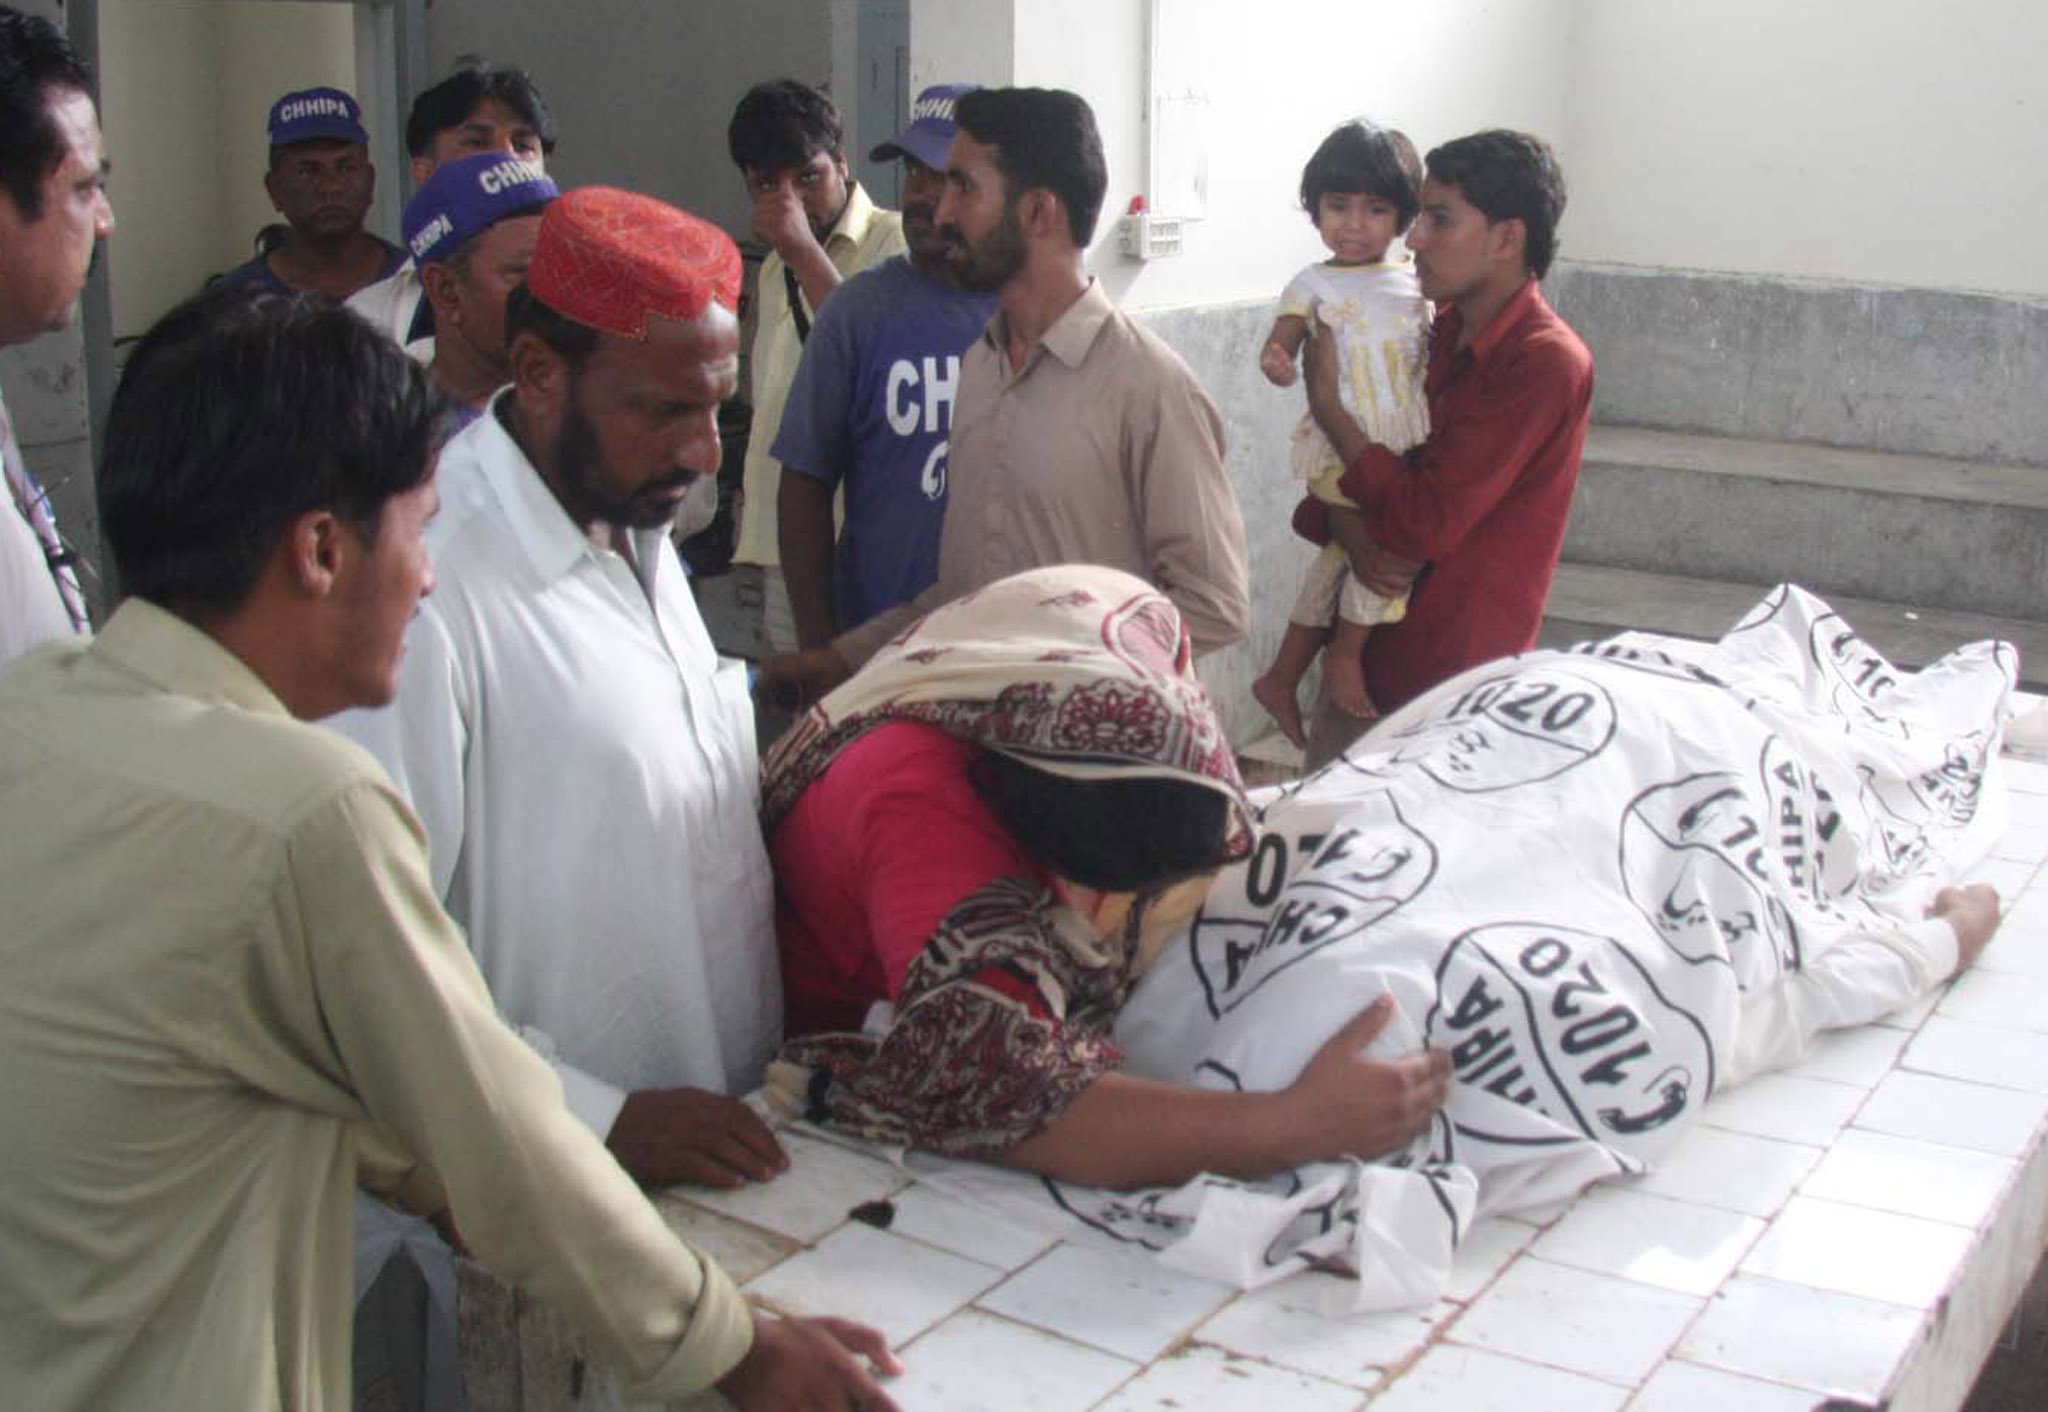 Wailing over a person slain in Karachi